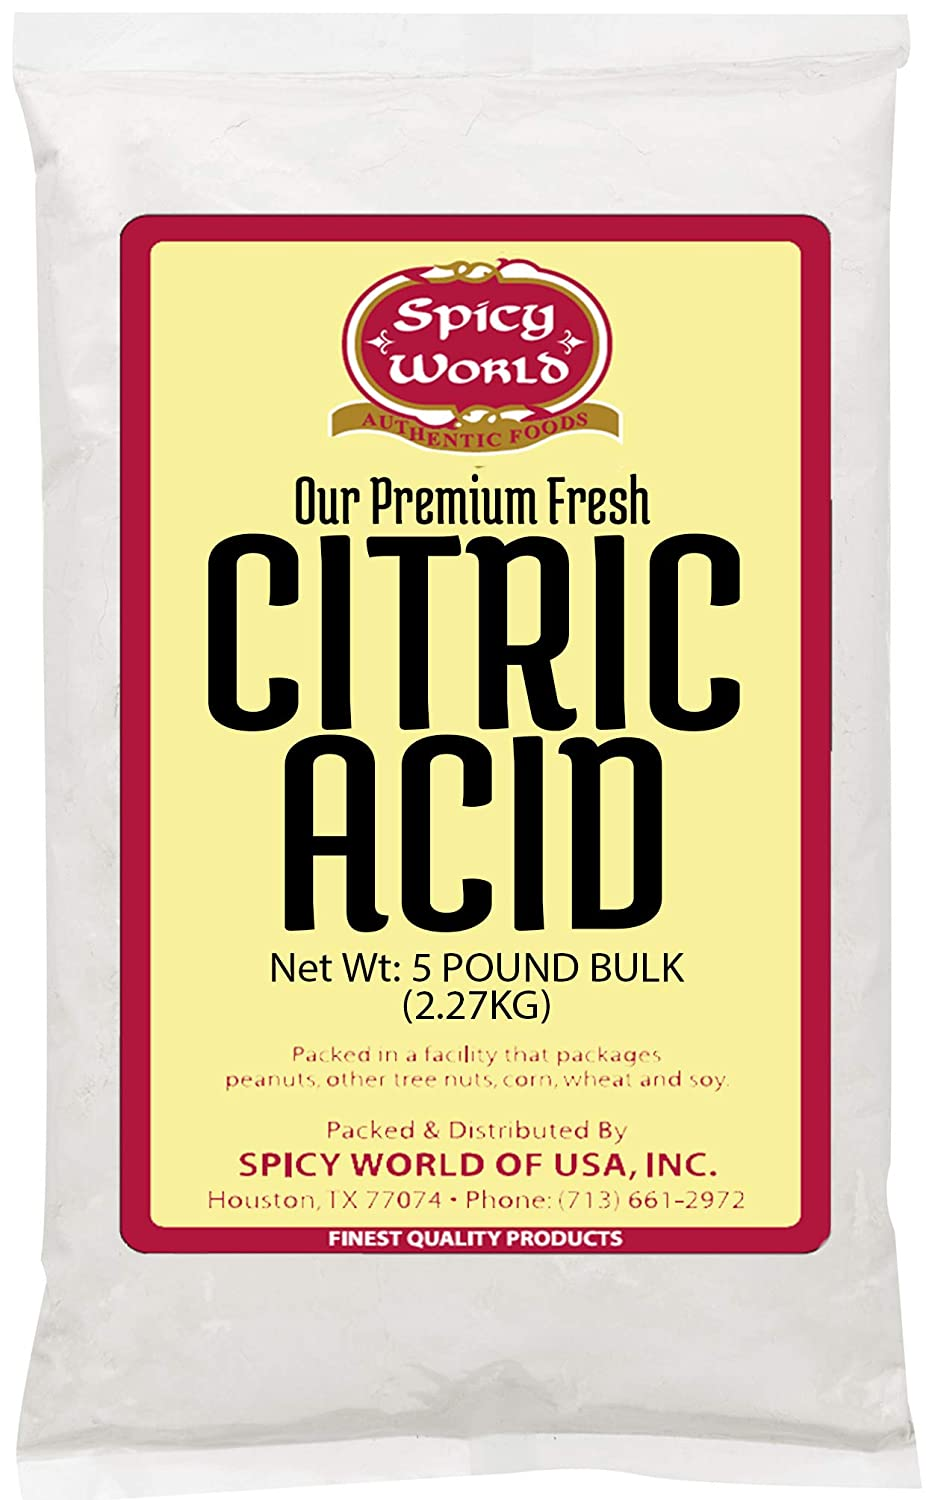 Pure Citric Acid, 5 Pound - Food Grade & Non-GMO- Natural Food Preservative, All Purpose Cleaning Agent, Beauty Ingredient- by Spicy World